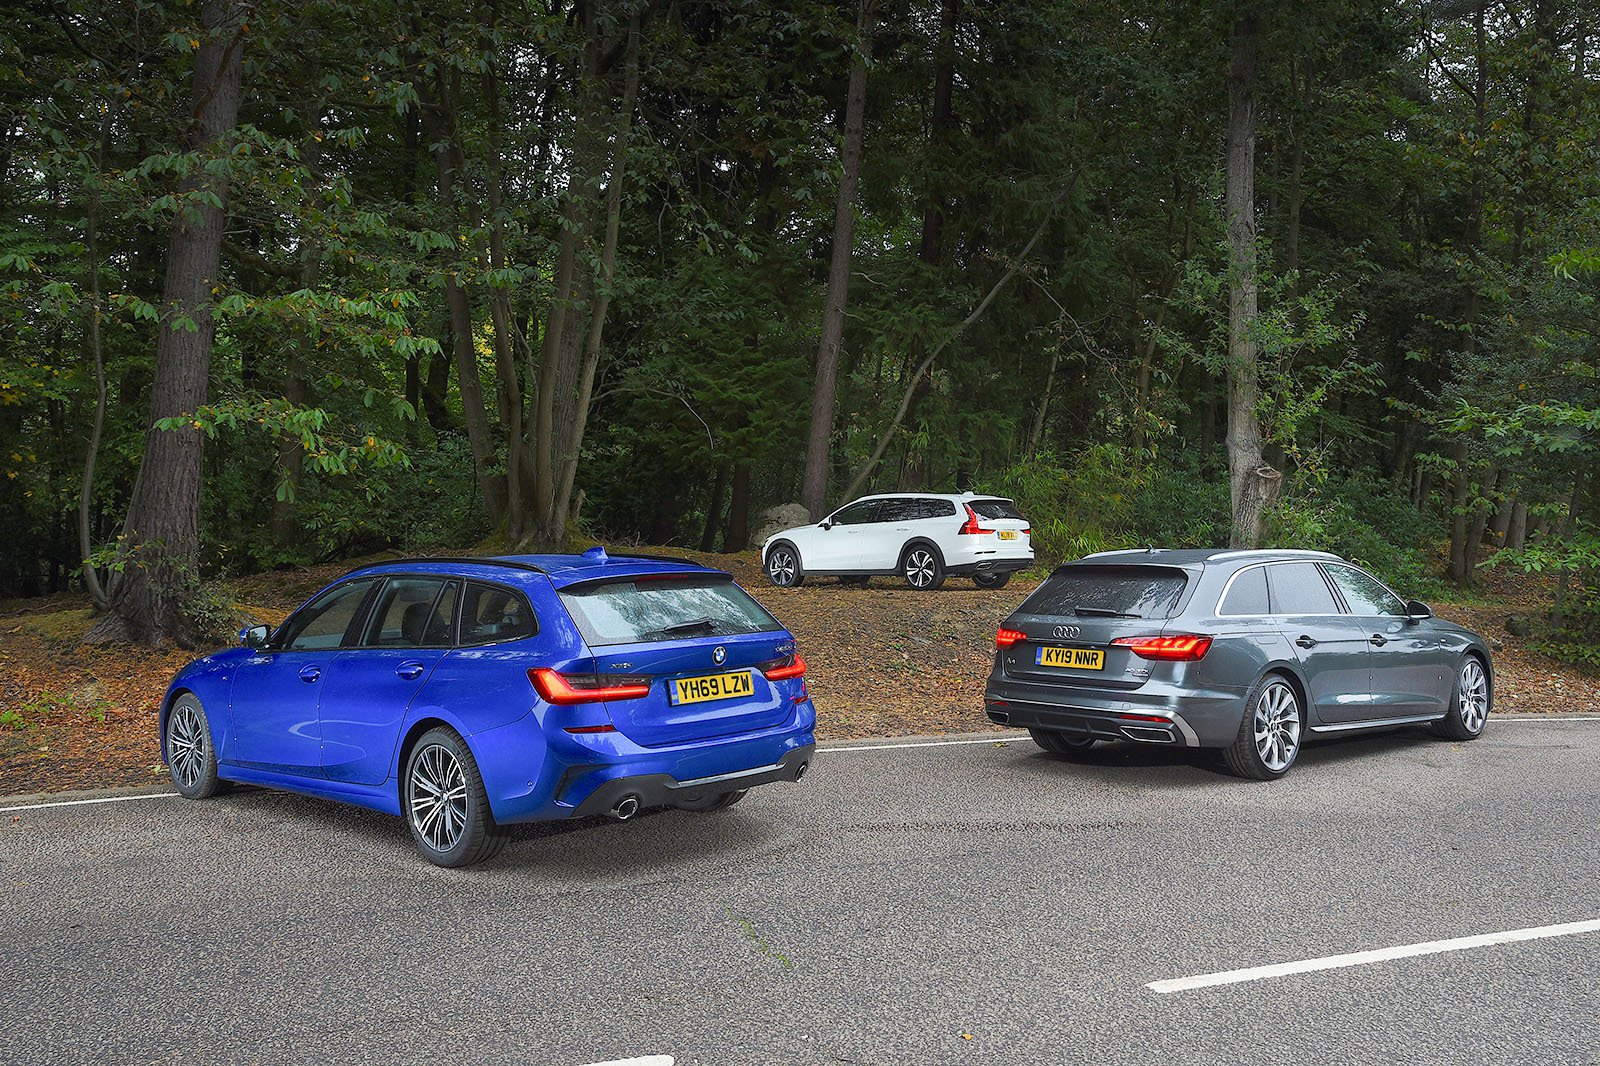 New Audi A4 Avant & BMW 3 Series Touring vs Volvo V60